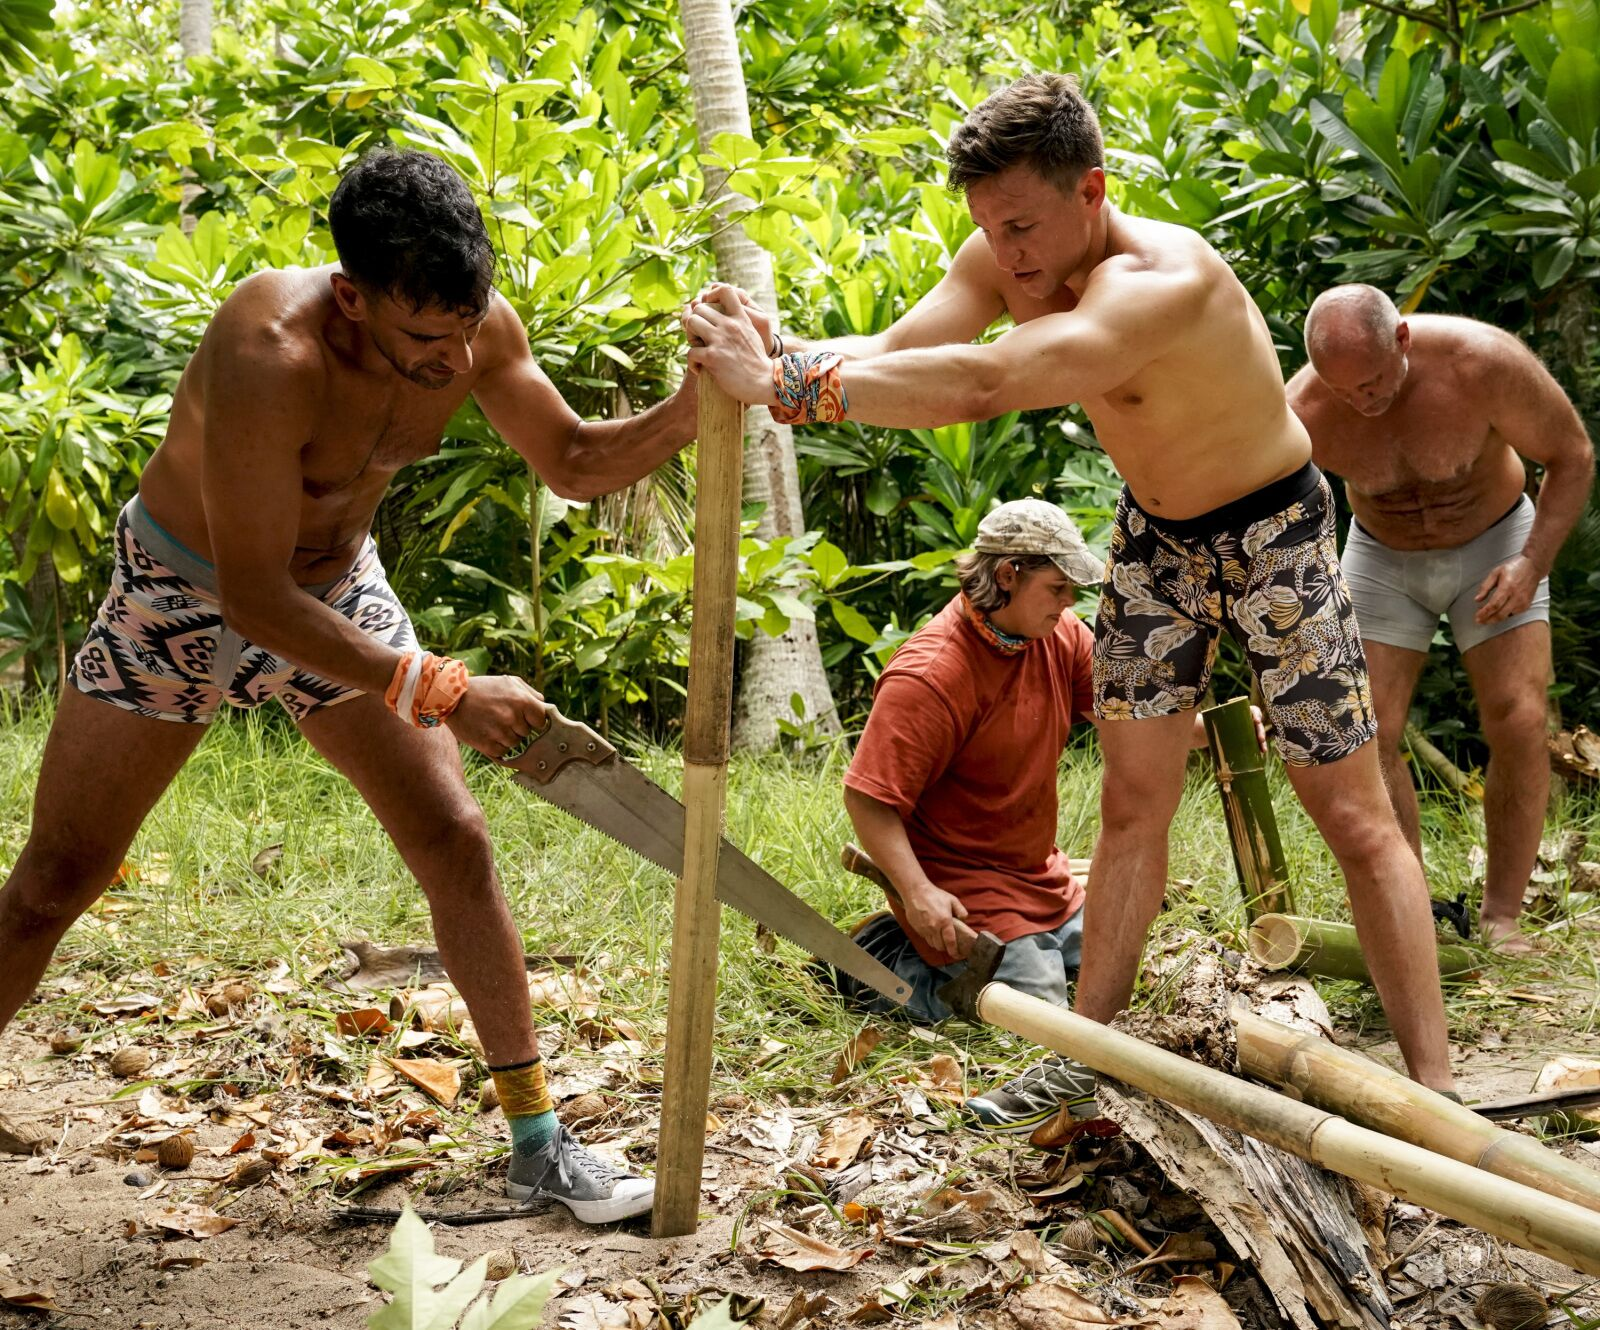 Survivor: Island of the Idols episode 1 synopsis hints fiery start to the game